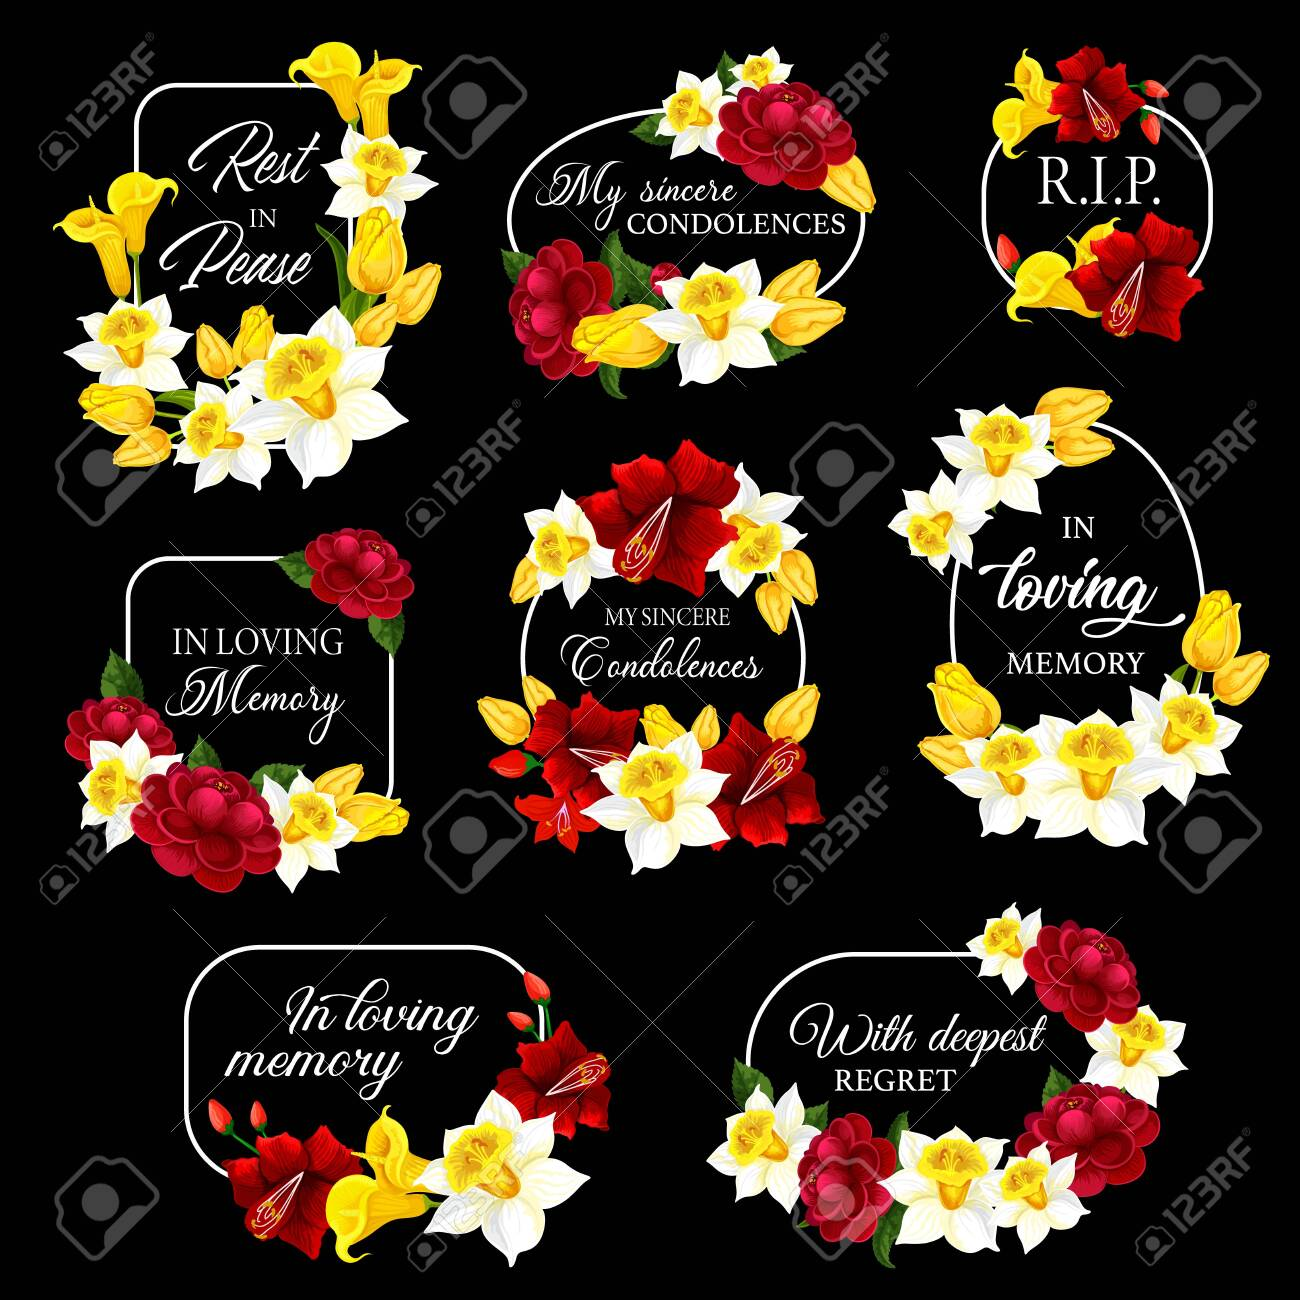 Funeral frames and obituary card borders, vector memorial condolences. Funeral floral frames black plaques for mourning and loving memory, RIP rest in peace remembrance, flower wreath mortuary plates - 153356322